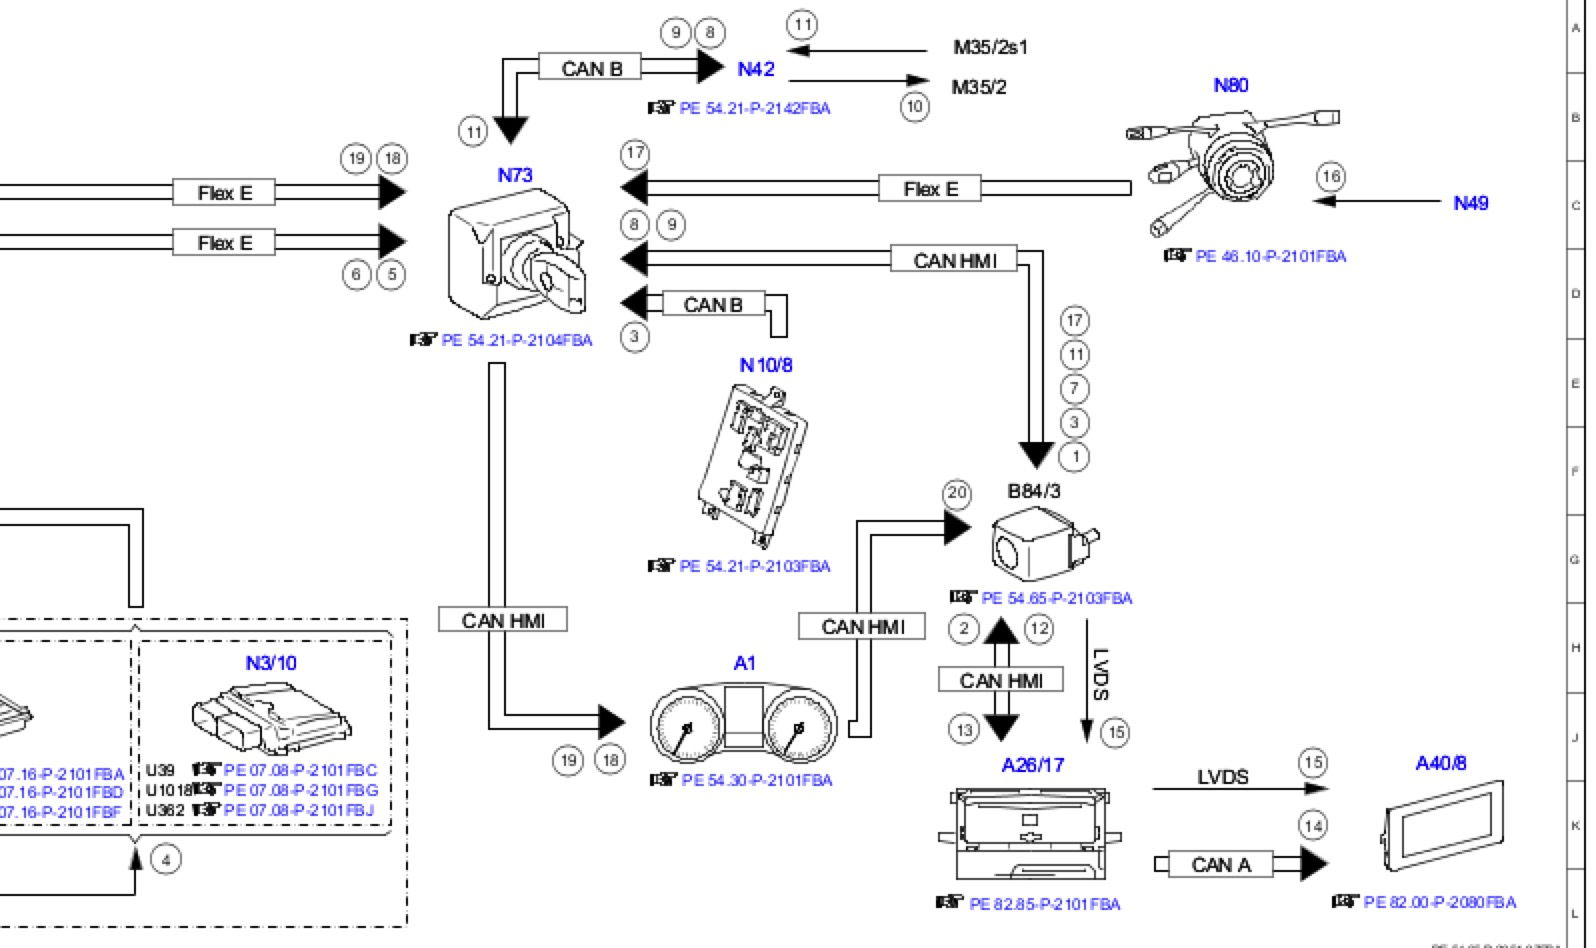 2005 Range Rover Hse Fuse Box Diagram Electrical Schematics Peugeot Expert Wire Data Schema U2022 2004 Land Discovery